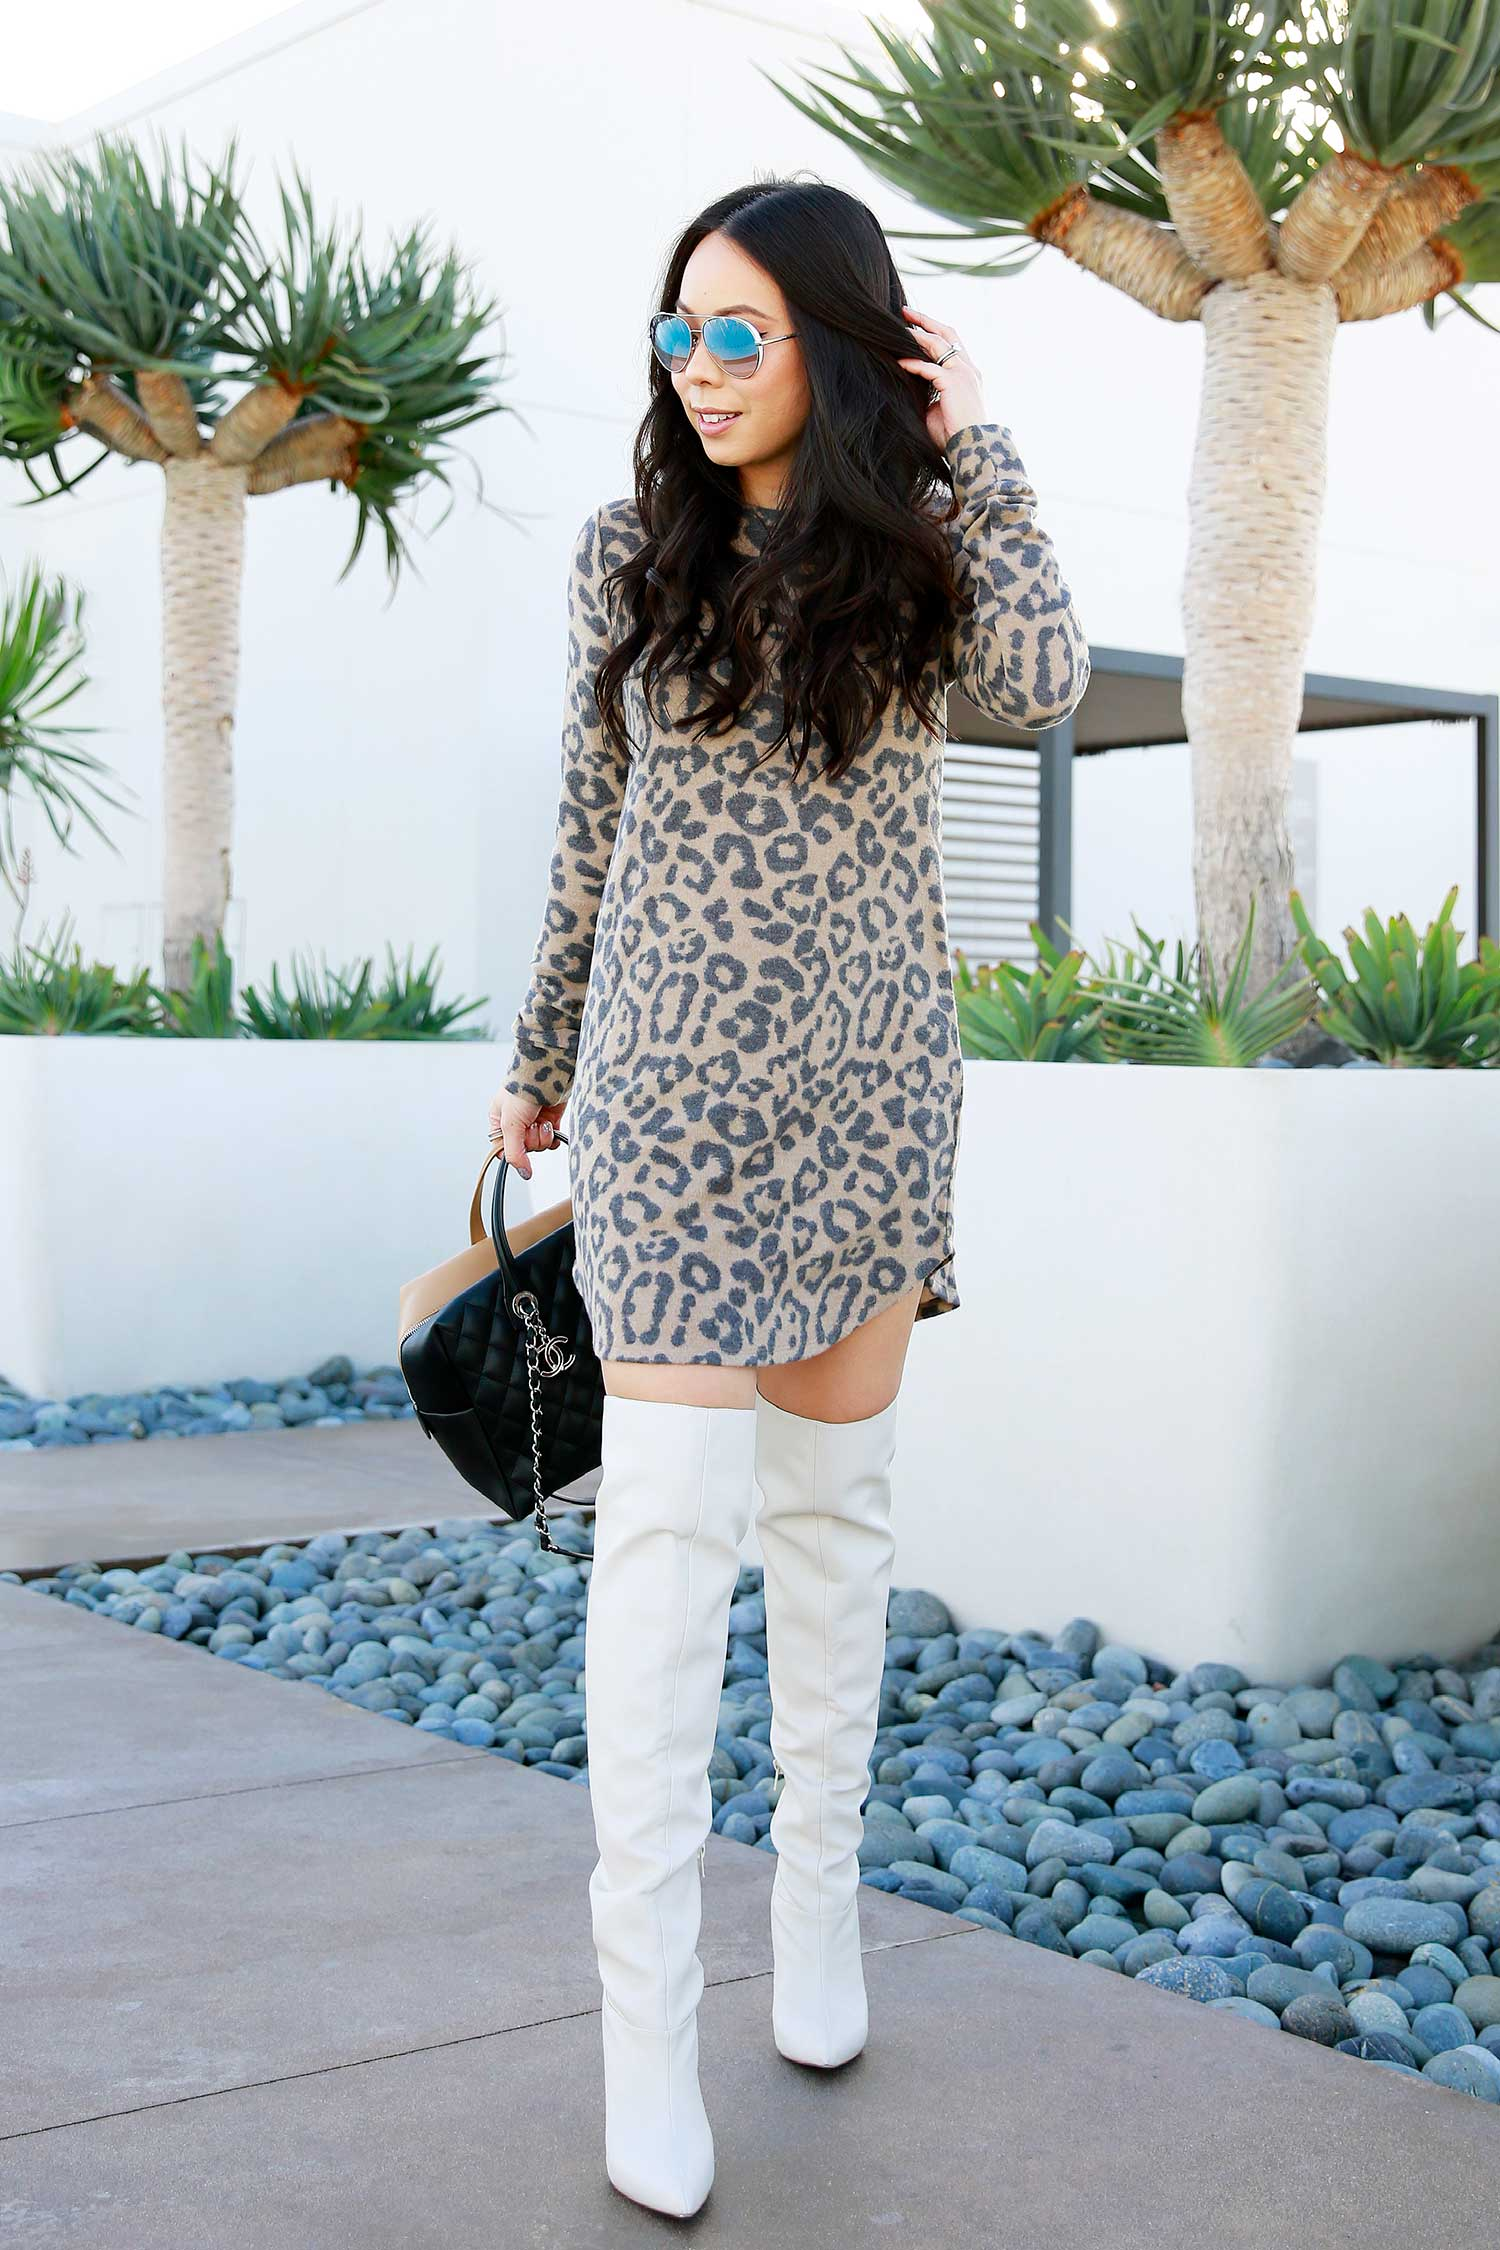 e3702e5ca4f1e Guess Aviator Sunglasses and Over The Knee Boots   Forever 21 Leopard Print Sweater  Dress   Chanel Bicolor Bowler Bag (similar pre-owned)